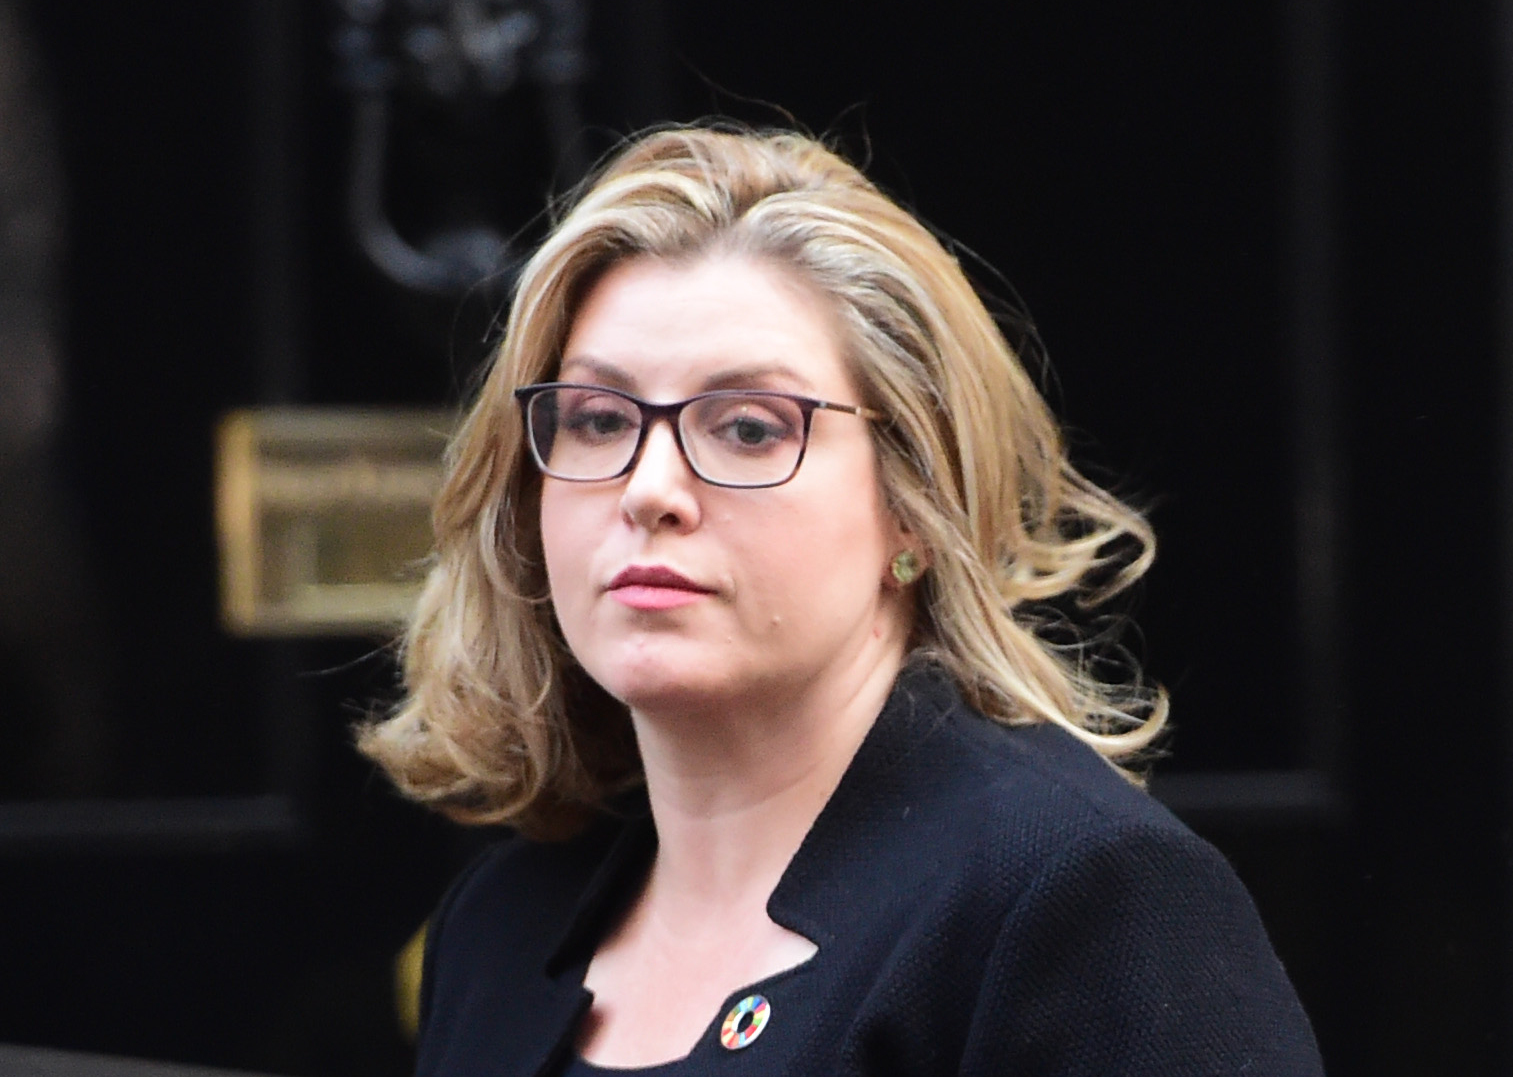 Women and Equalities Minister Penny Mordaunt wrote to the BBC to complain